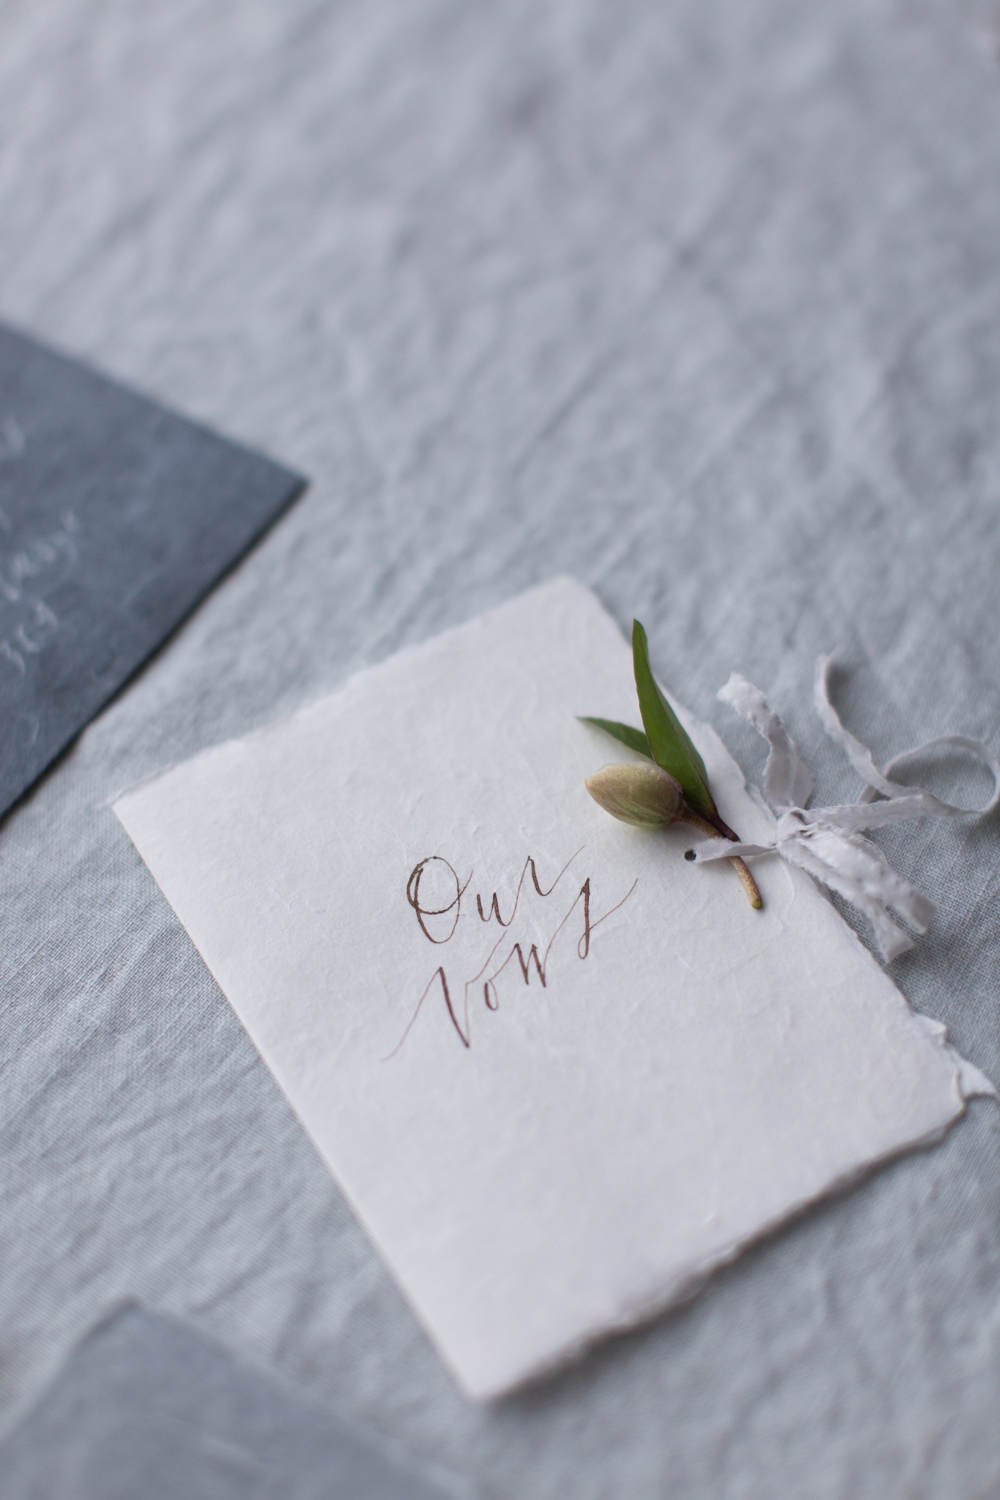 Vow booklet on handmade cotton paper and calligraphy by Paula Lee